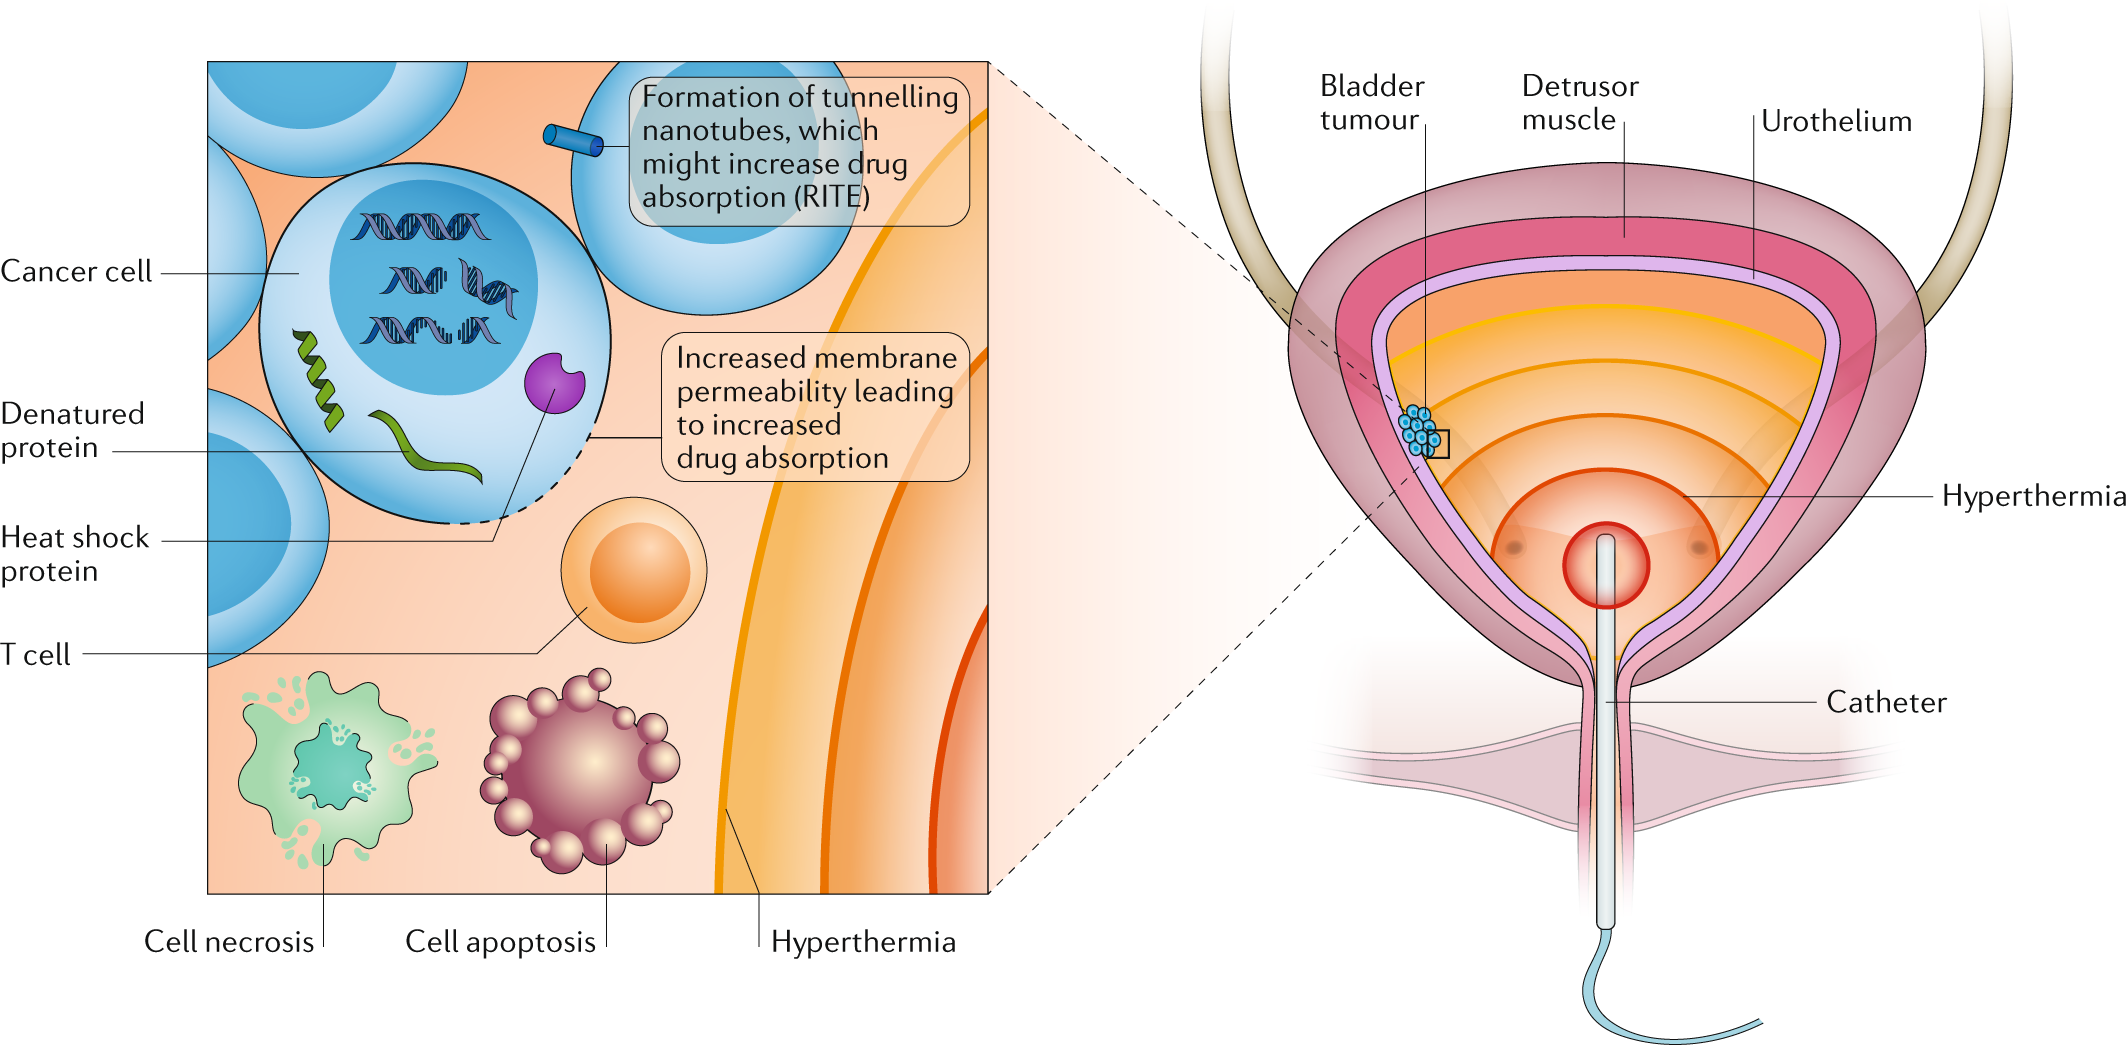 Intravesical Device Assisted Therapies For Non Muscle Invasive Mallory 685 Wiring Diagram Bladder Cancer Nature Reviews Urology